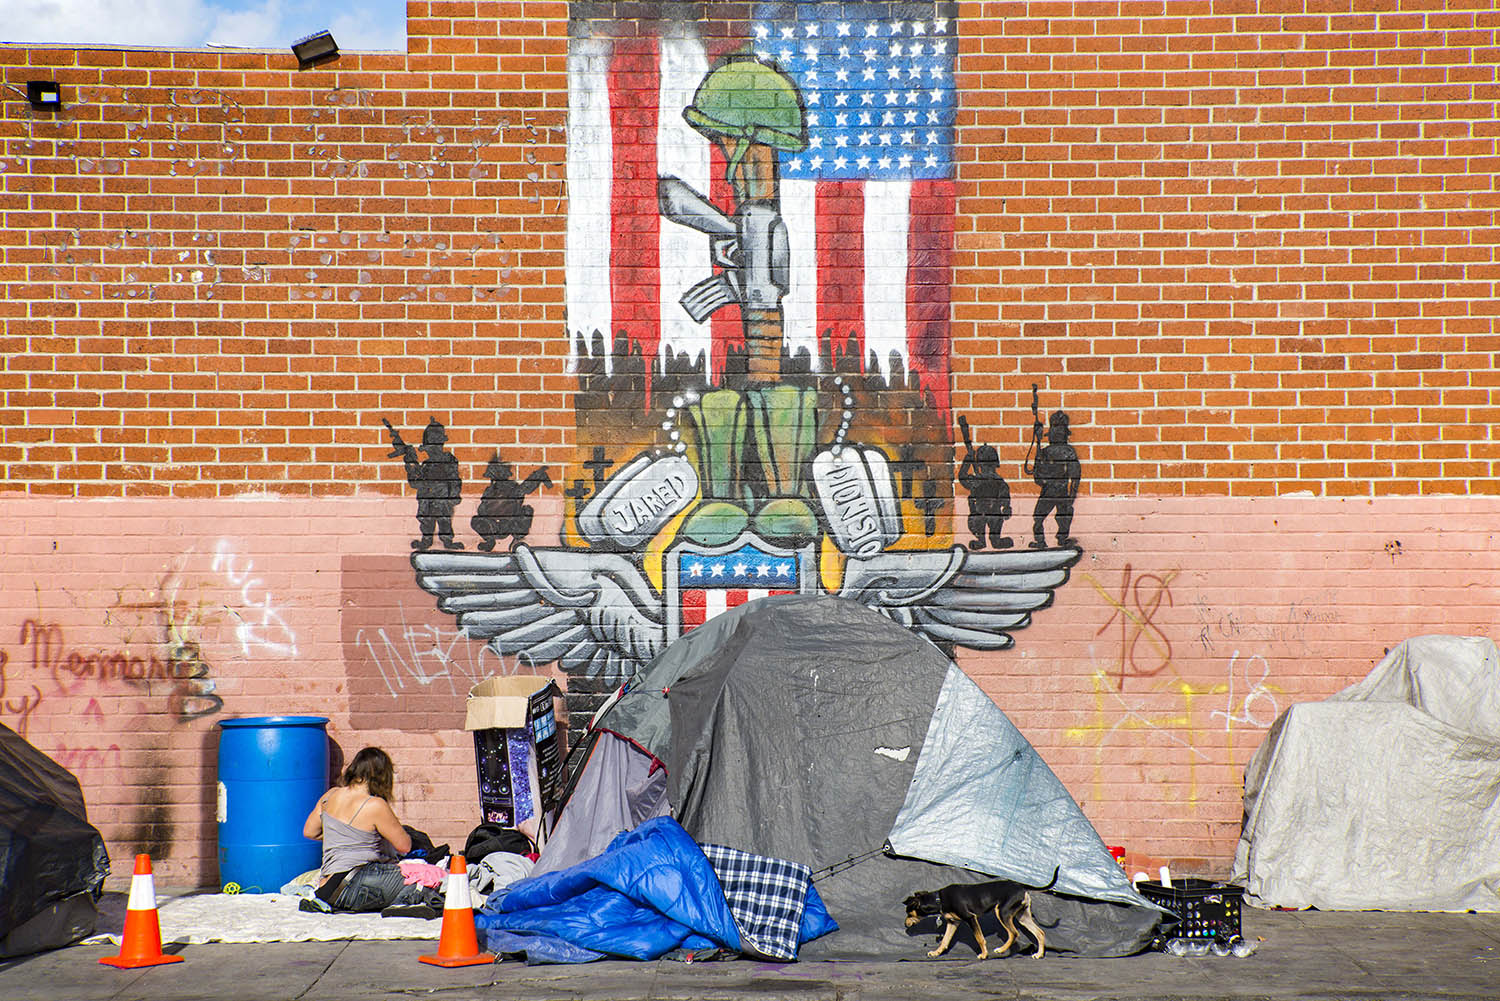 Skid-row-morning-homeless-woman-flag-mural-los-angeles.jpg